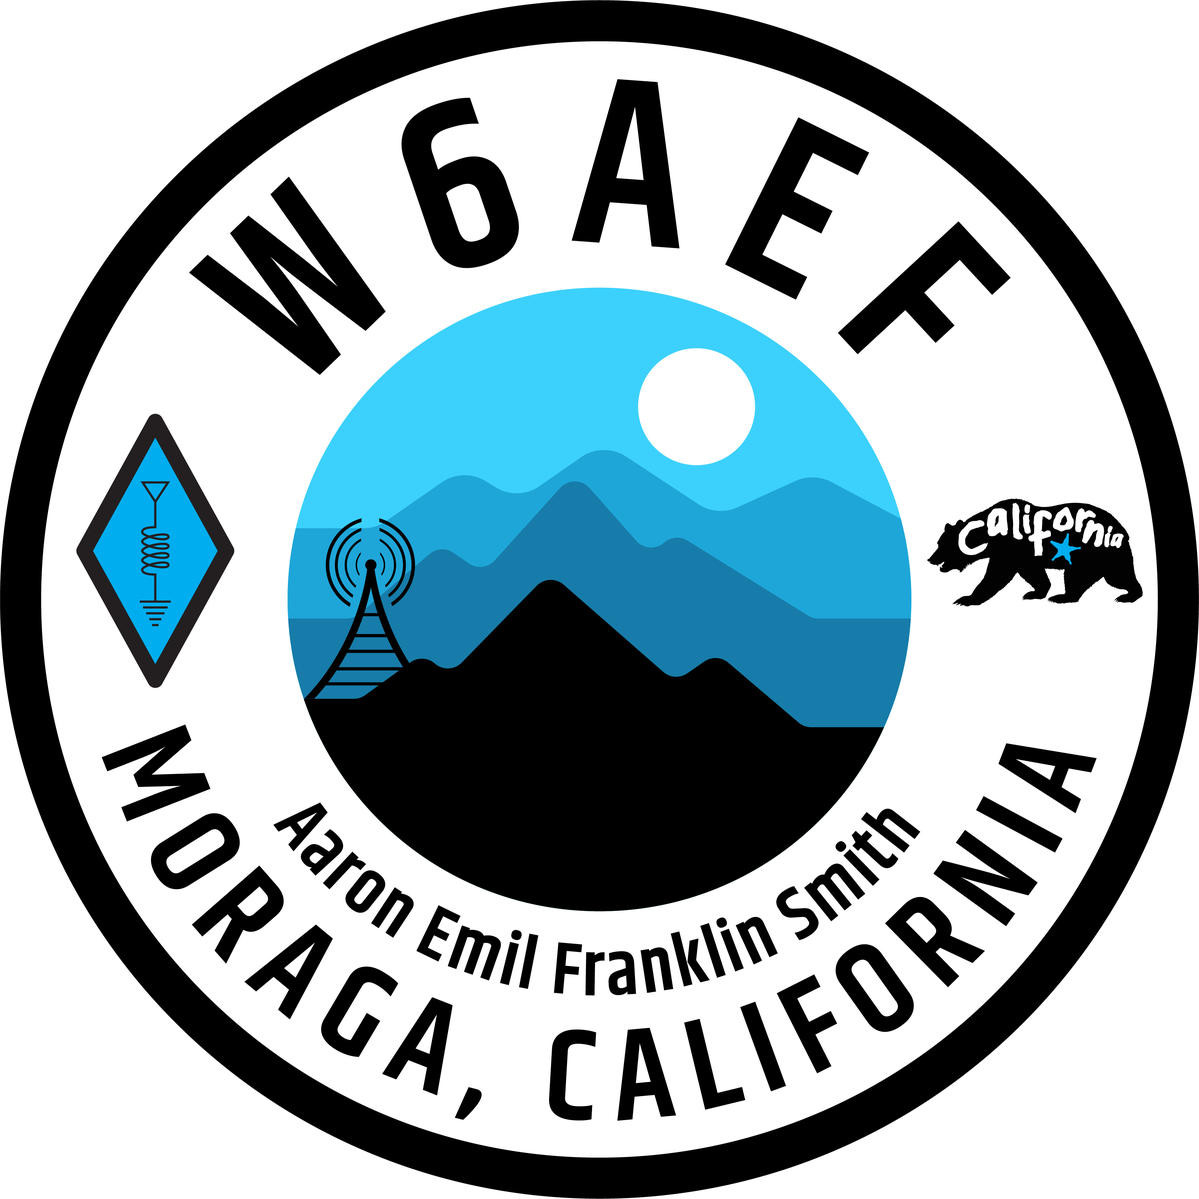 Primary Image for W6AEF